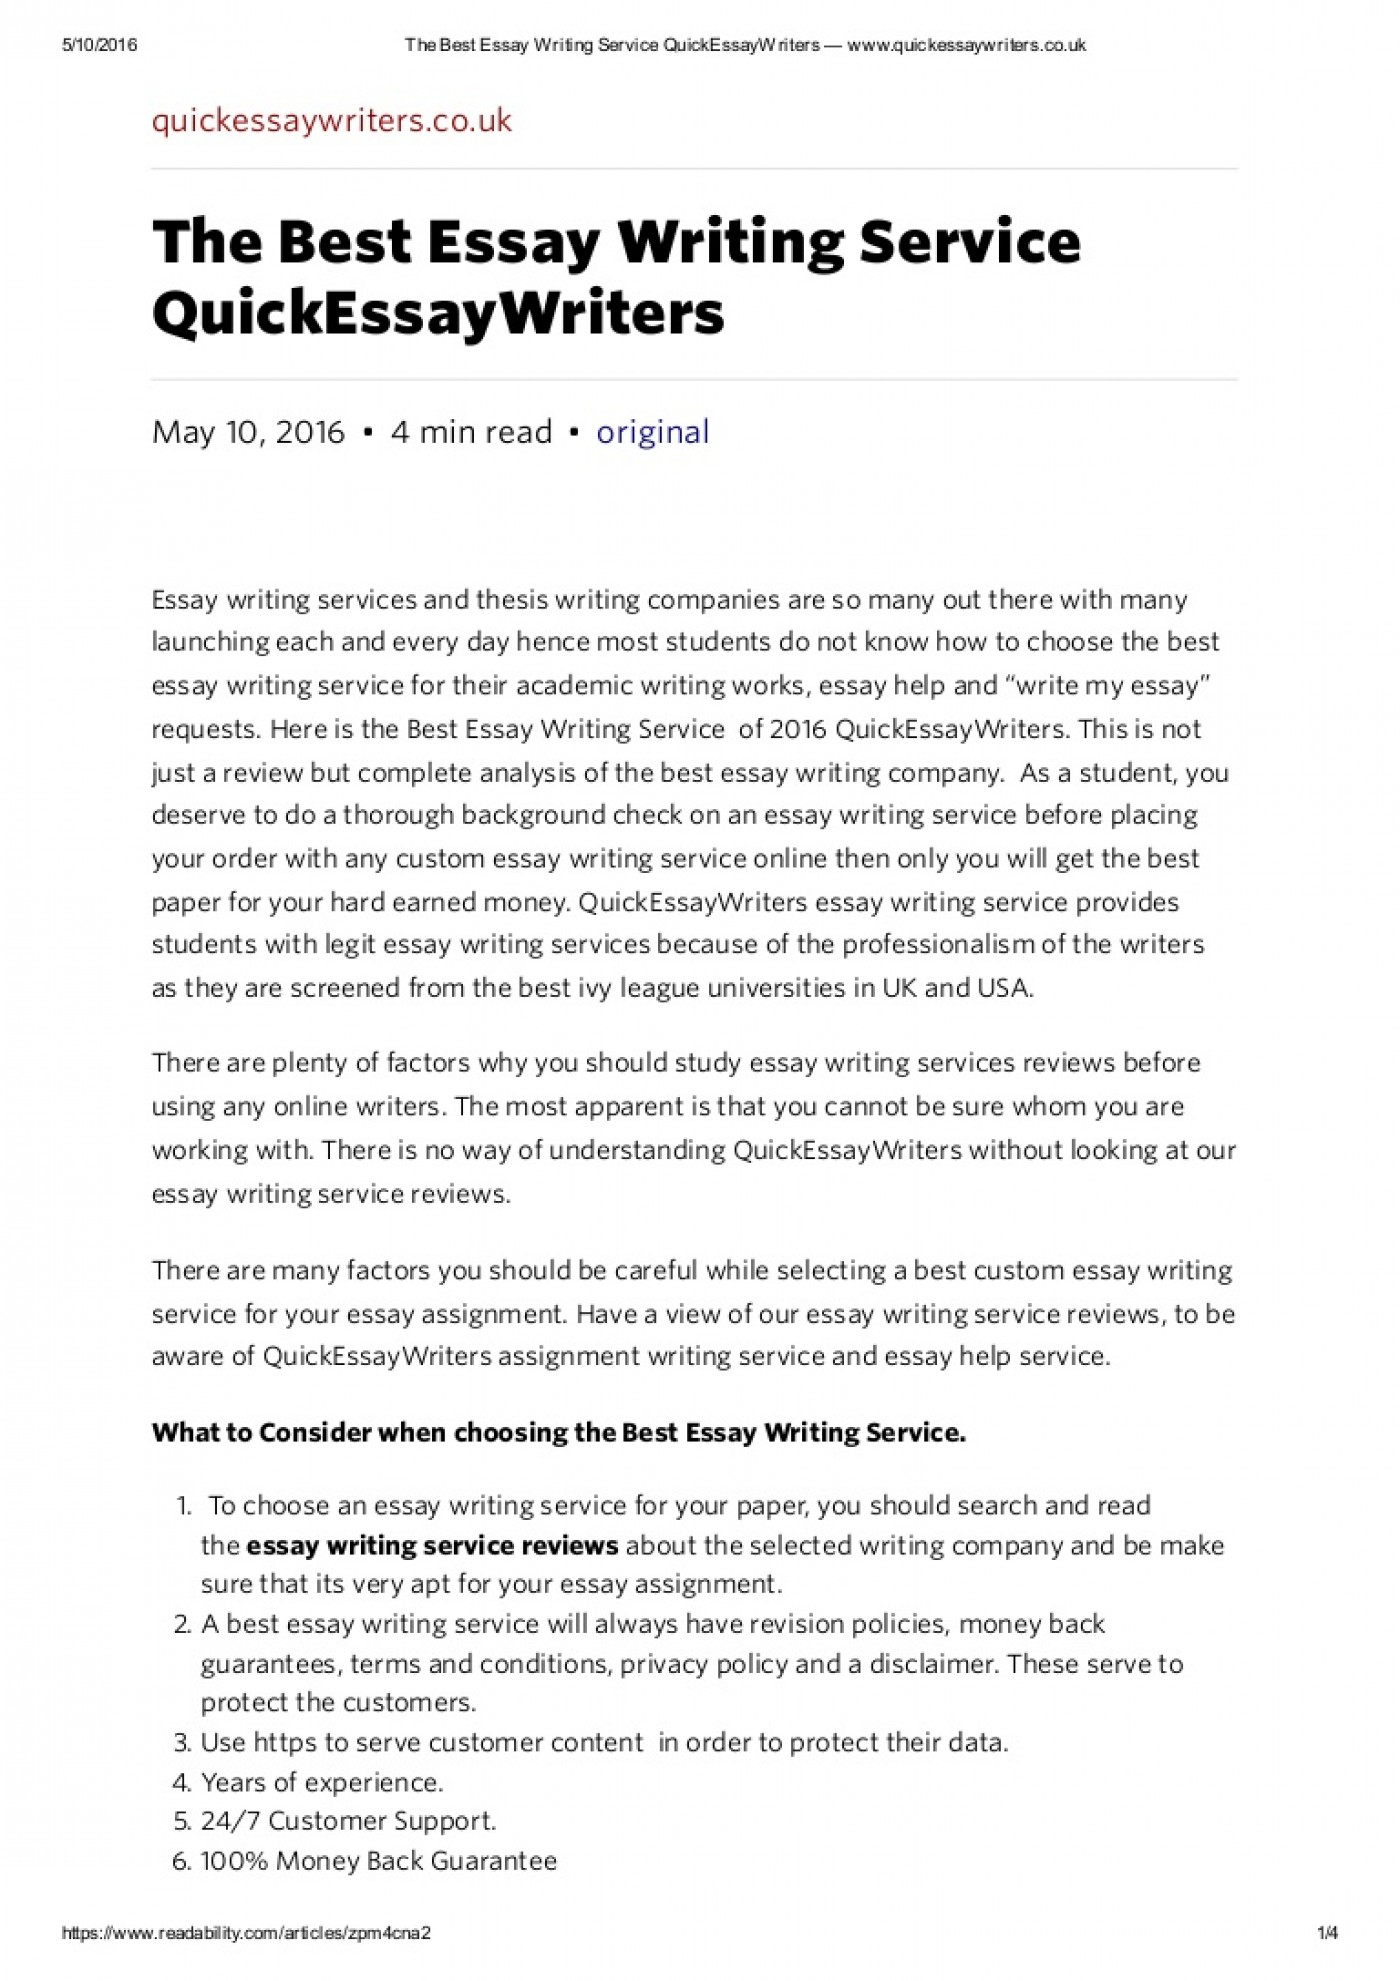 014 Essay Example Thebestessaywritingservicequickessaywriterswww Thumbnail Best Awful Writing Apps For Ipad Service 2018 Books Our Friend 1400